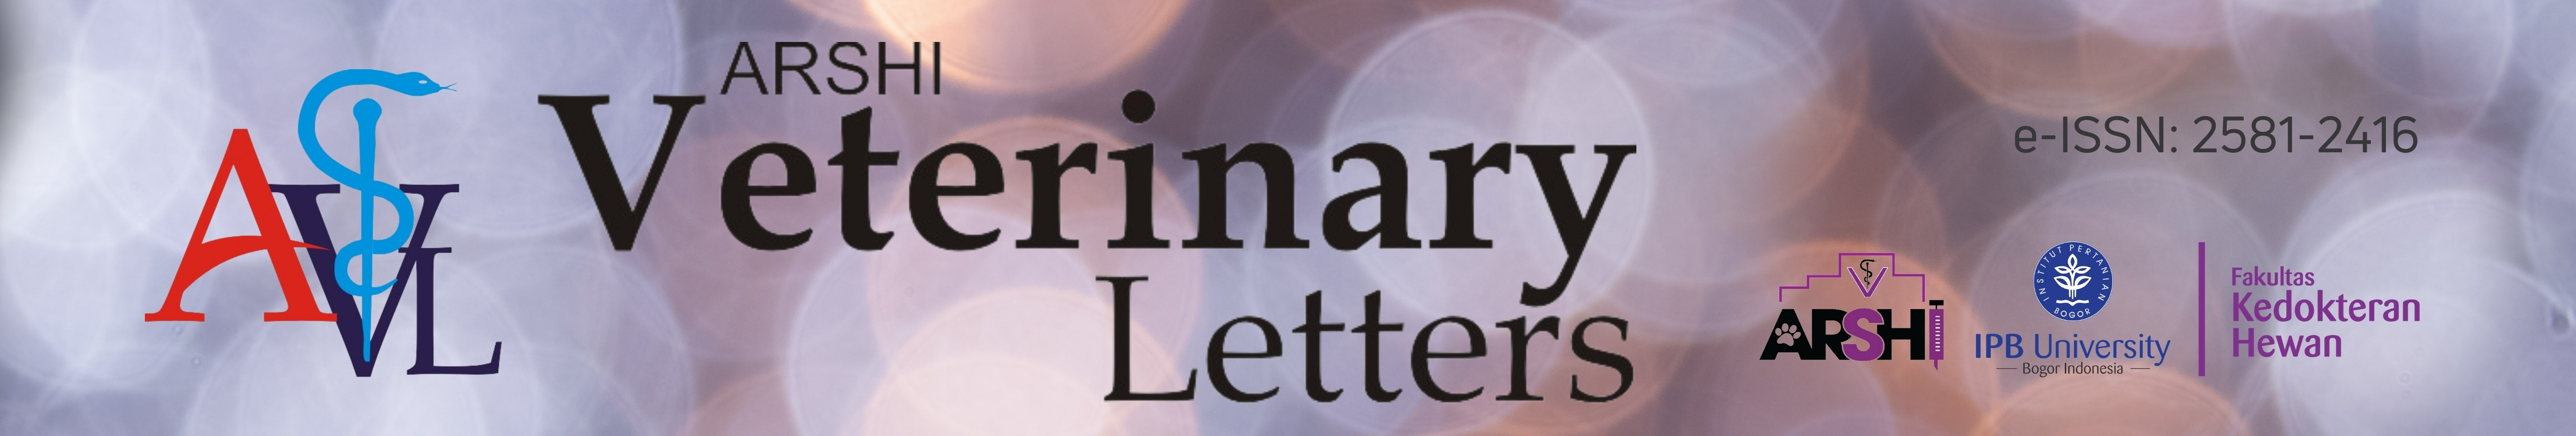 ARSHI Veterinary Letters